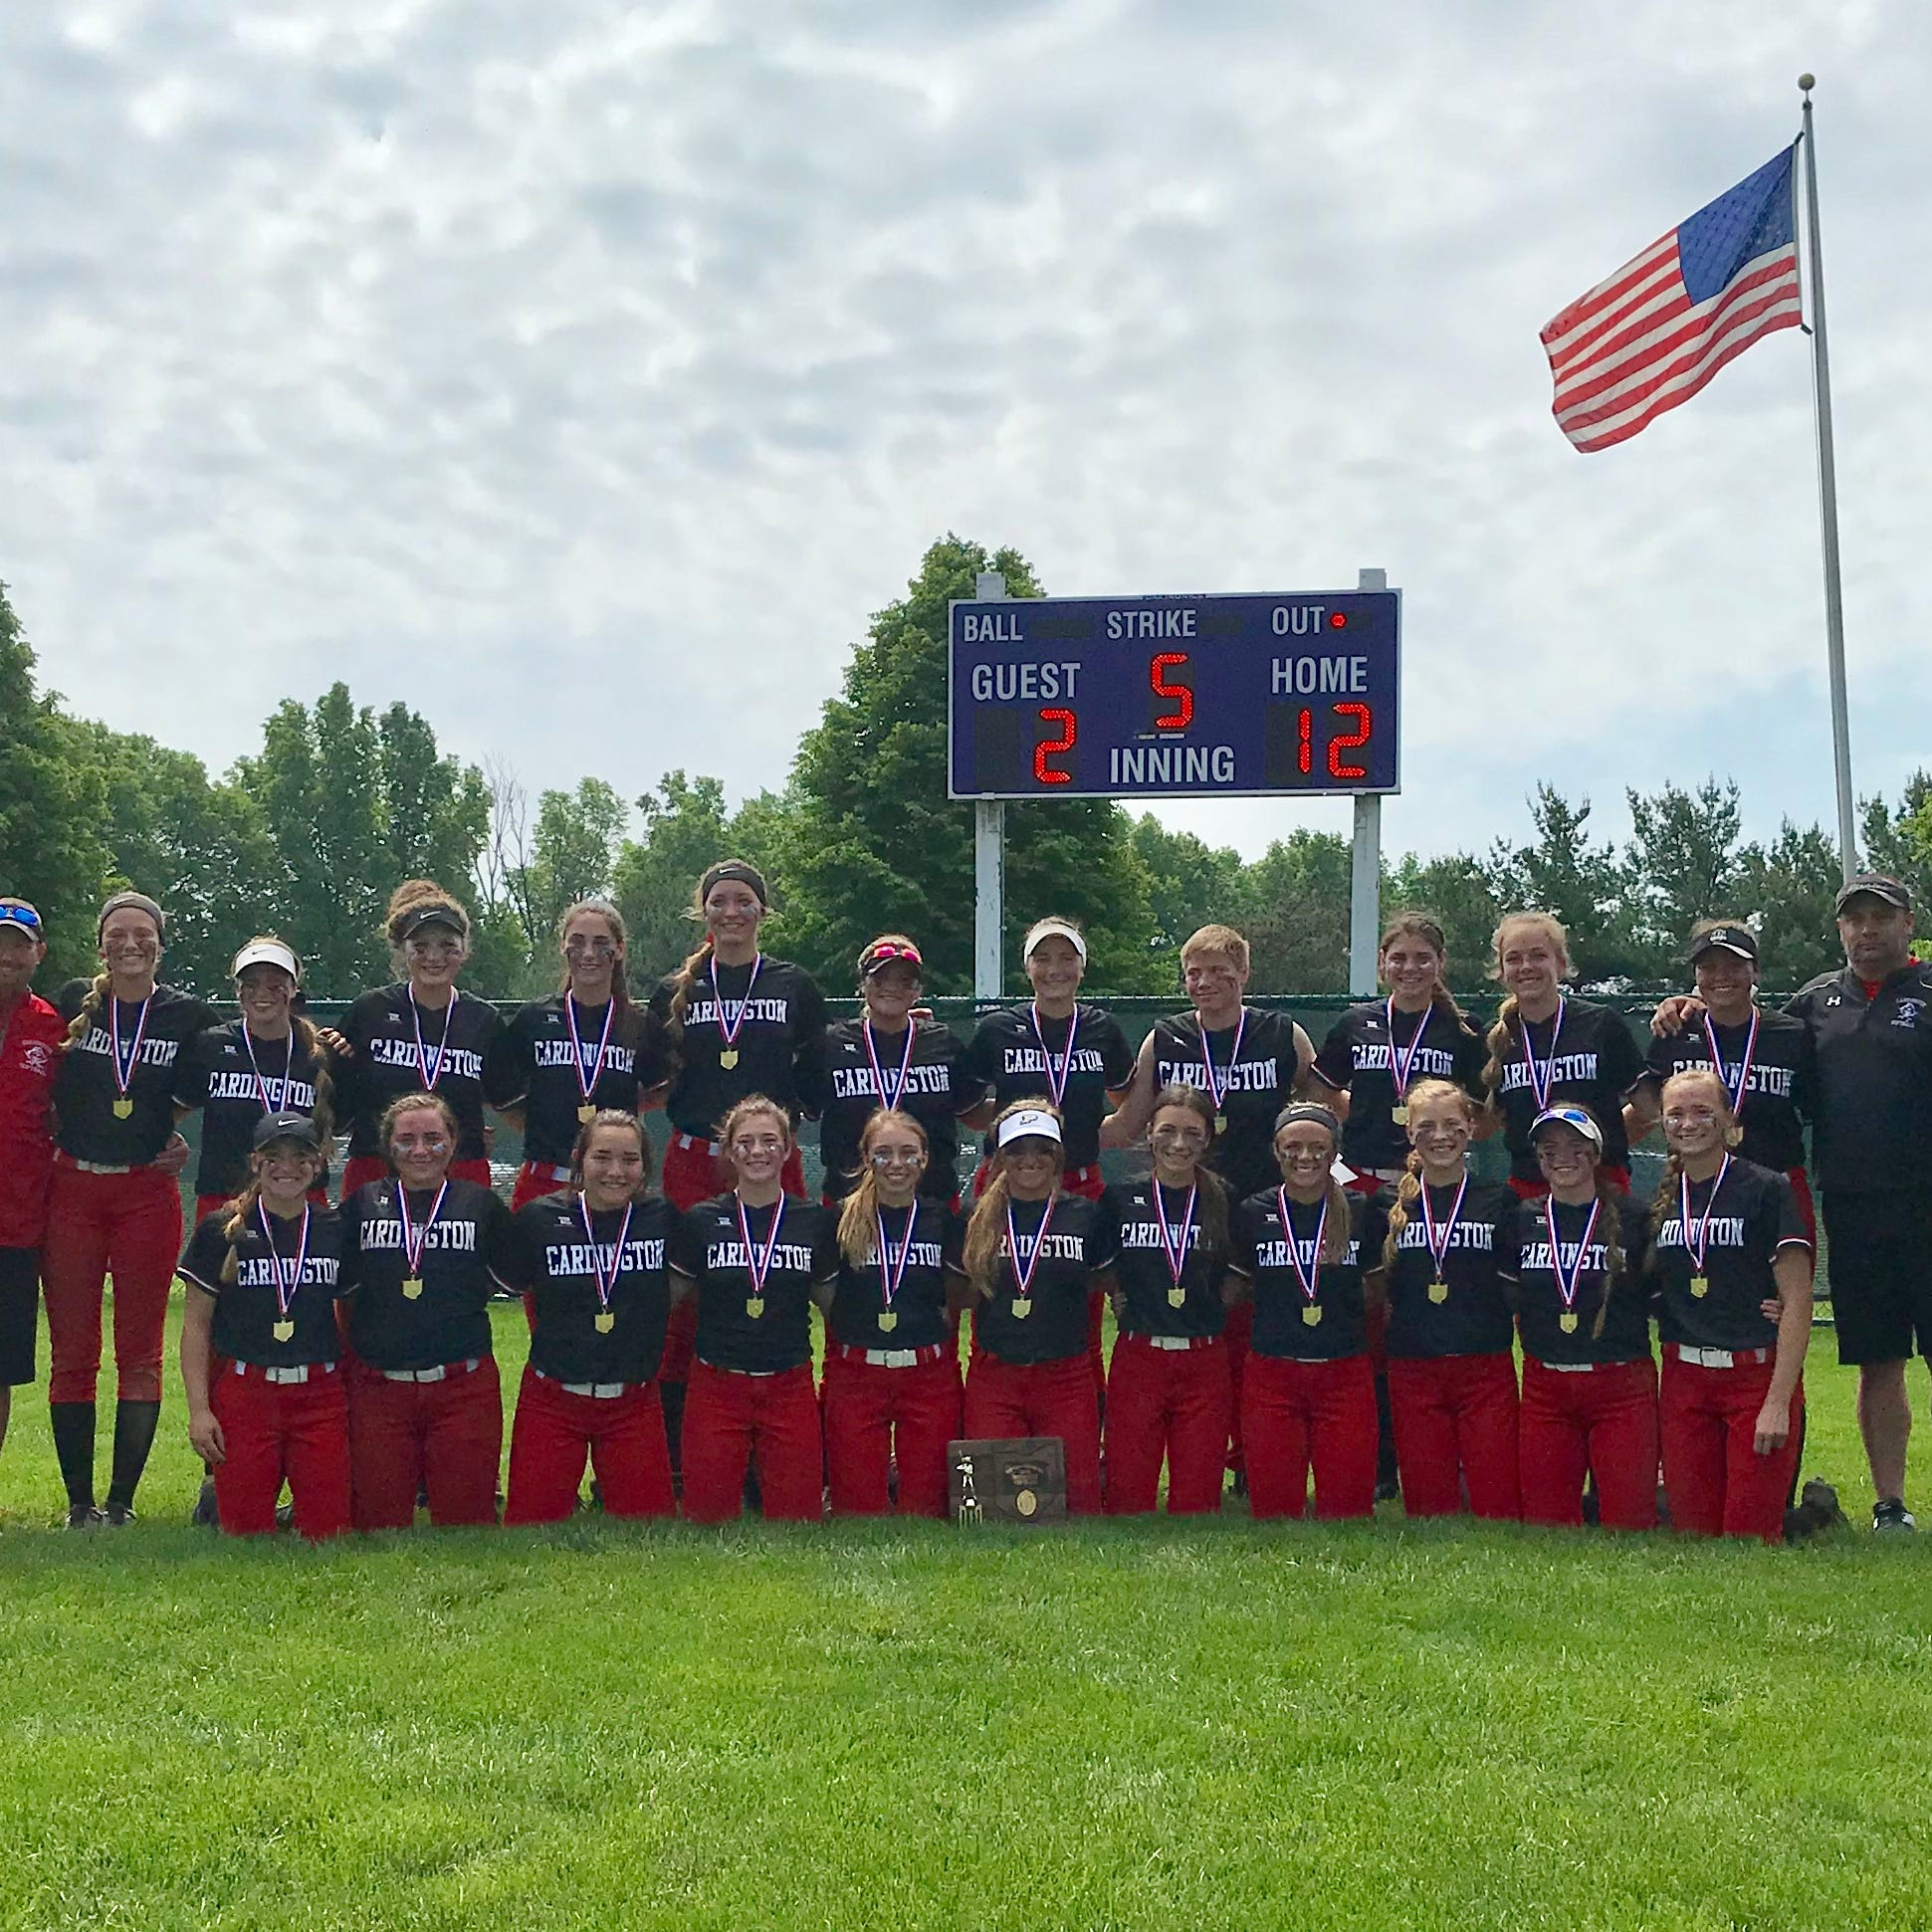 Cardington rolls Utica, wins fourth straight district softball crown